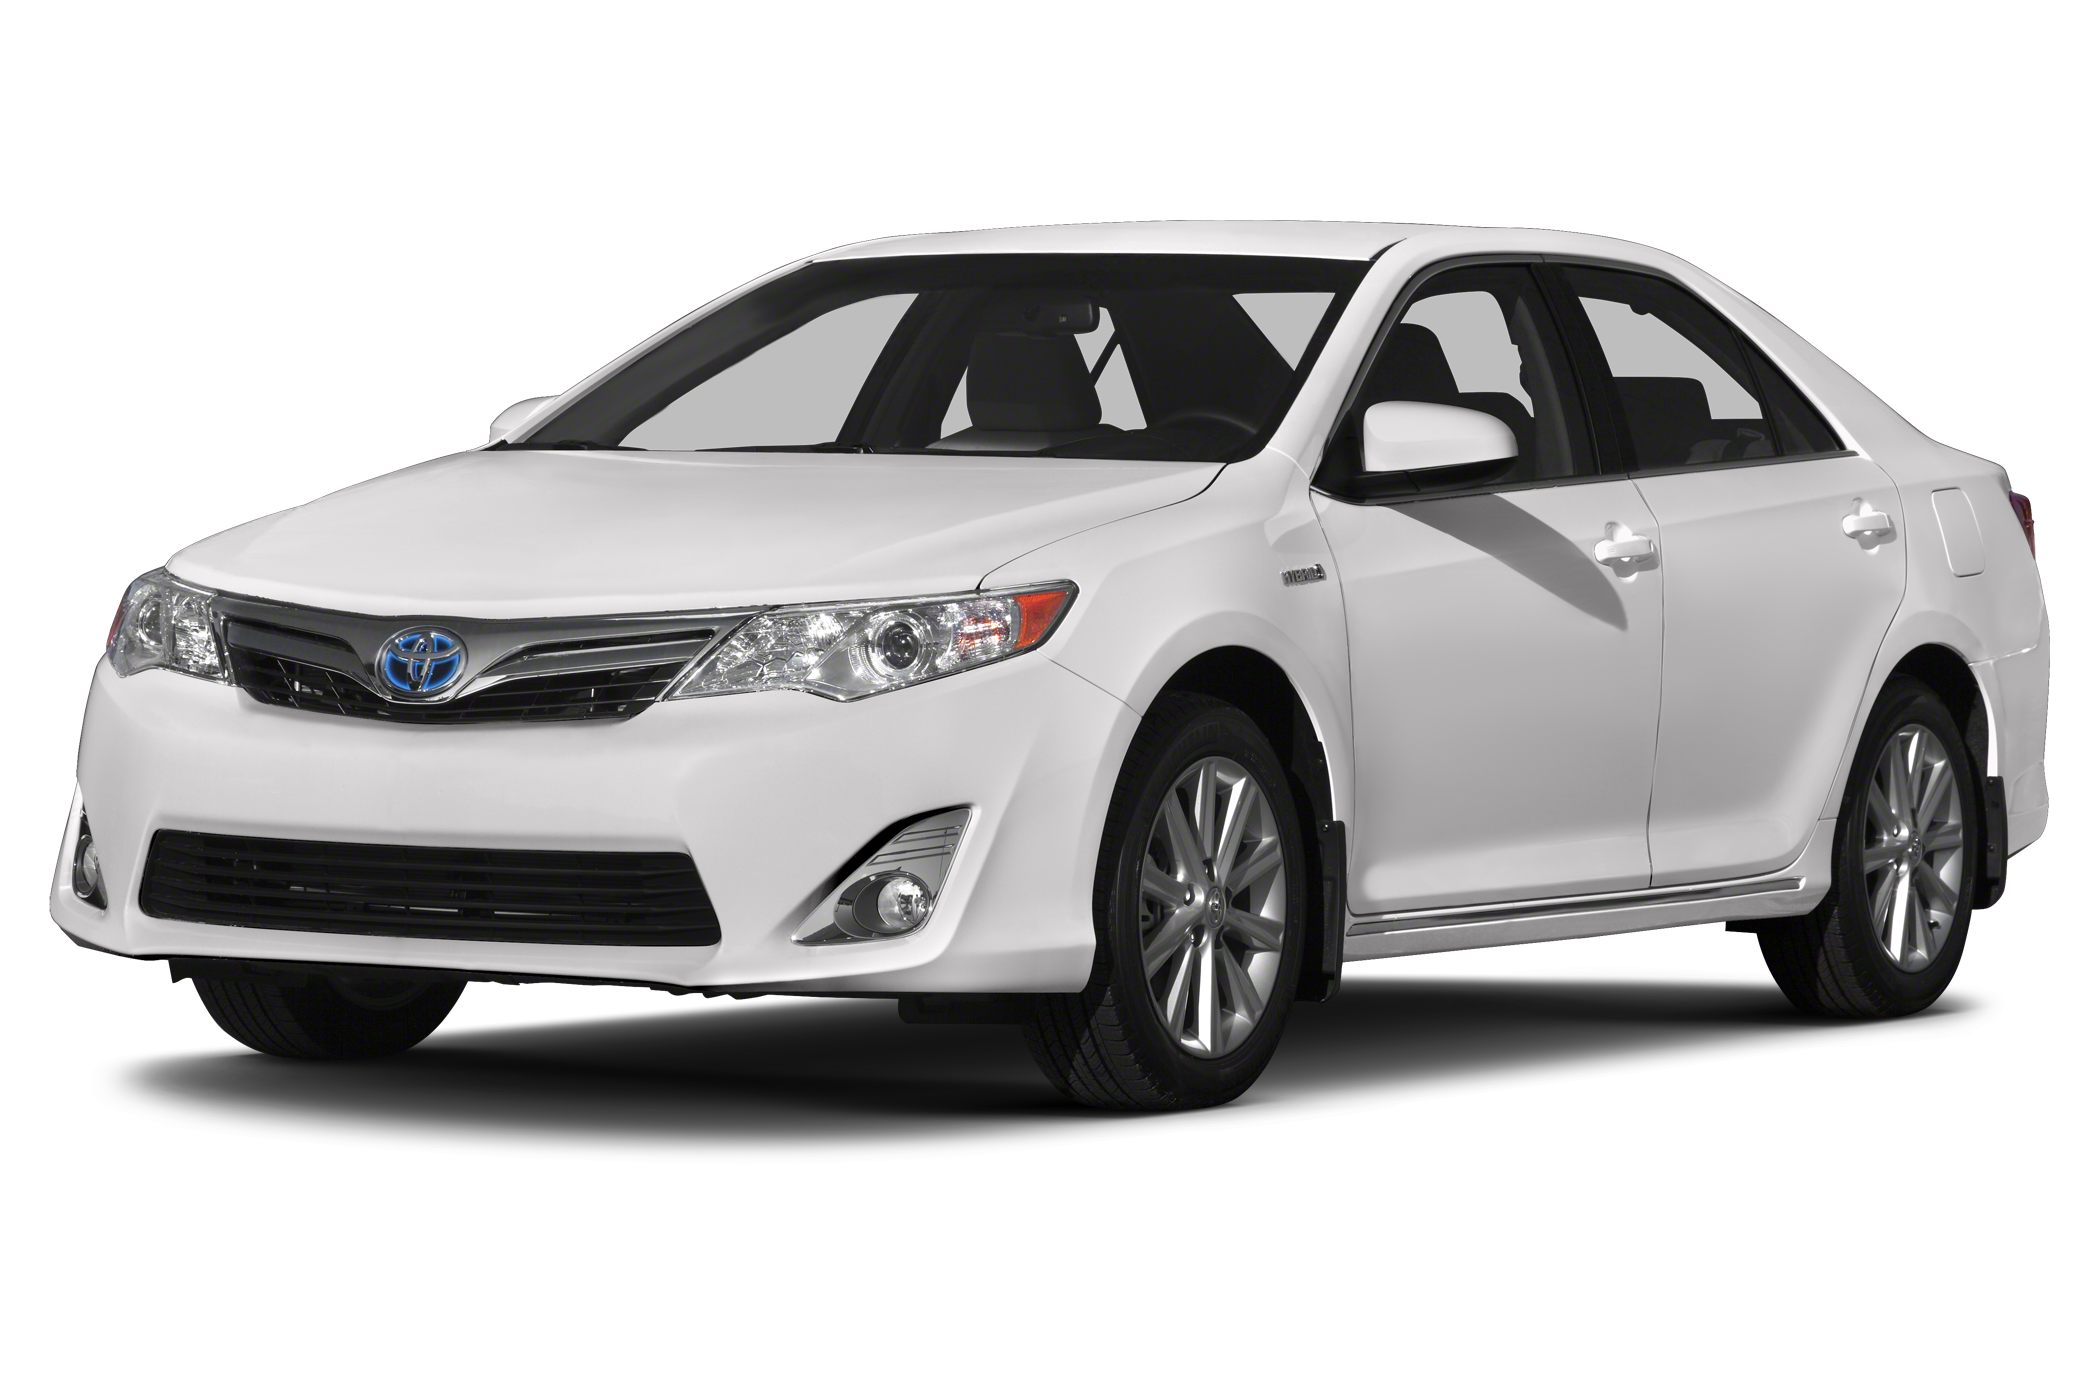 2013 Toyota Camry Hybrid XLE Sedan for sale in Leesburg for $23,995 with 14,937 miles